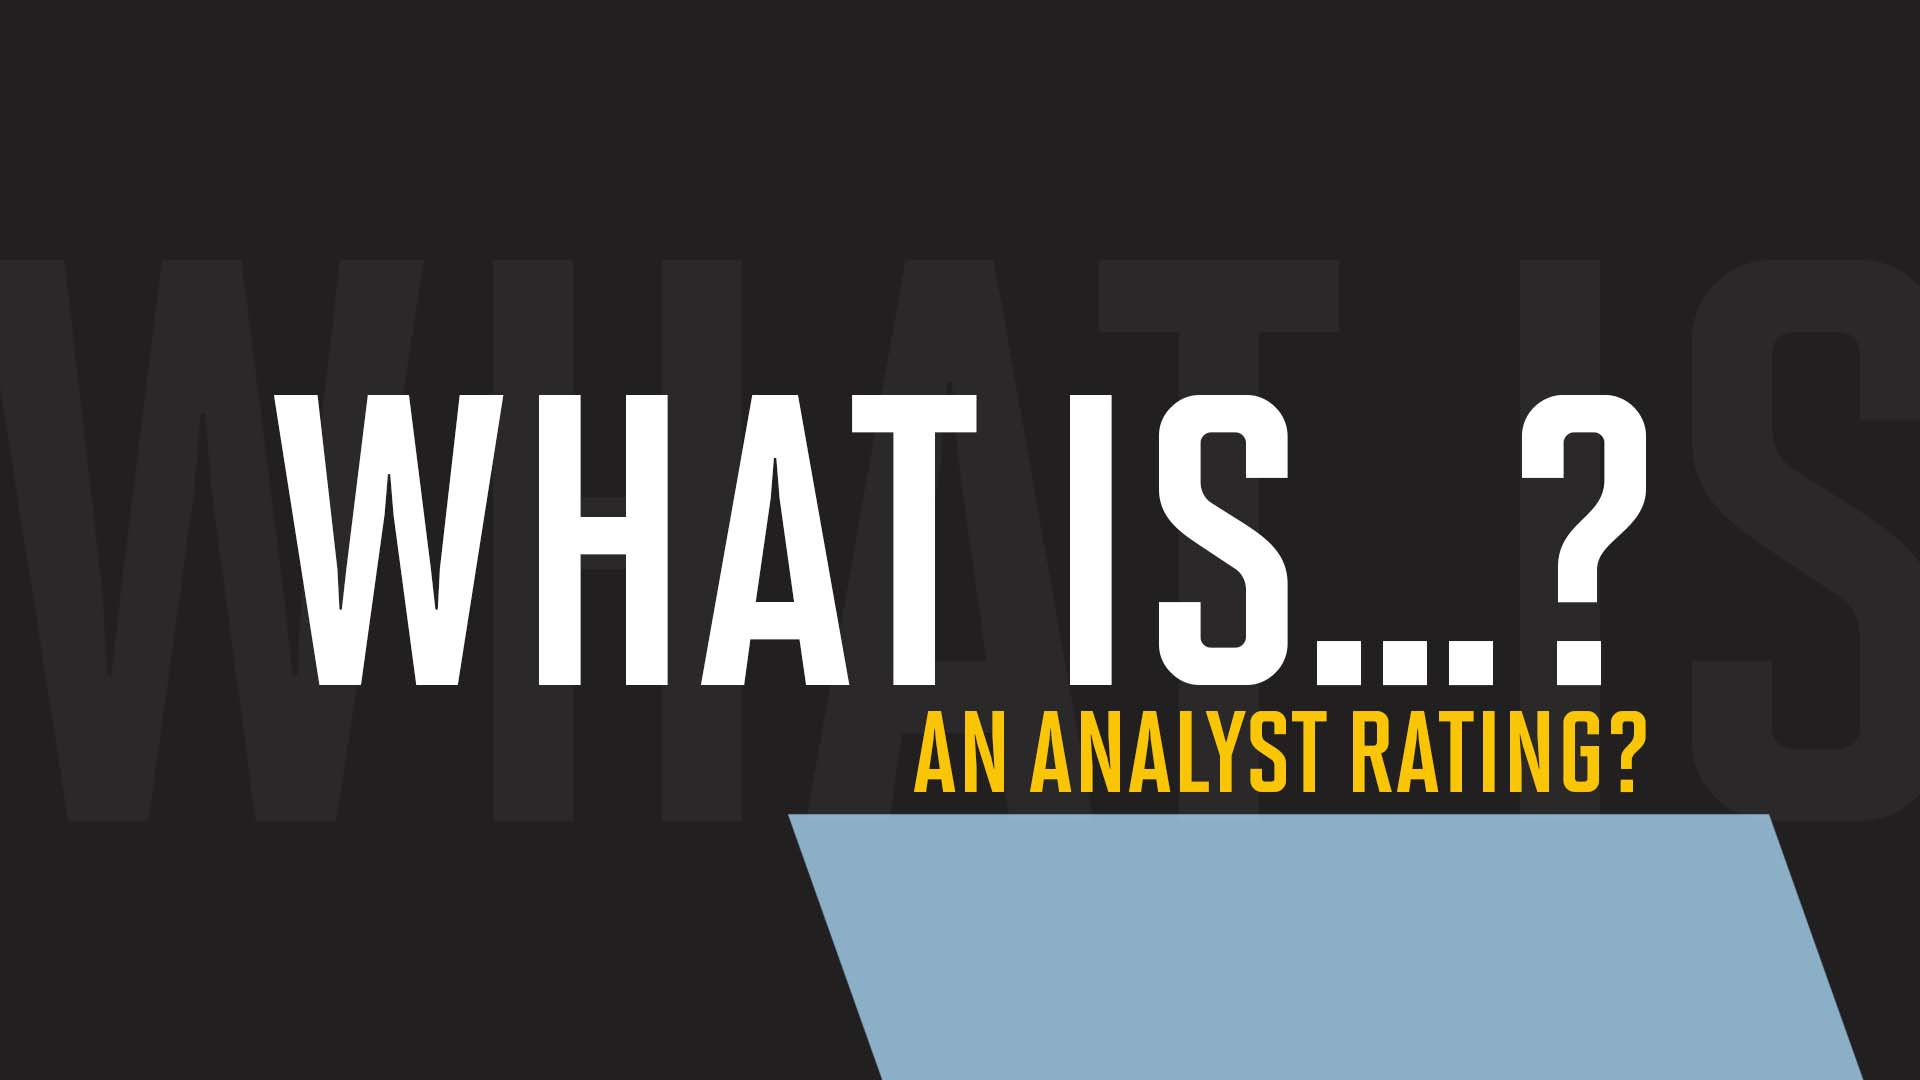 What is an analyst rating?